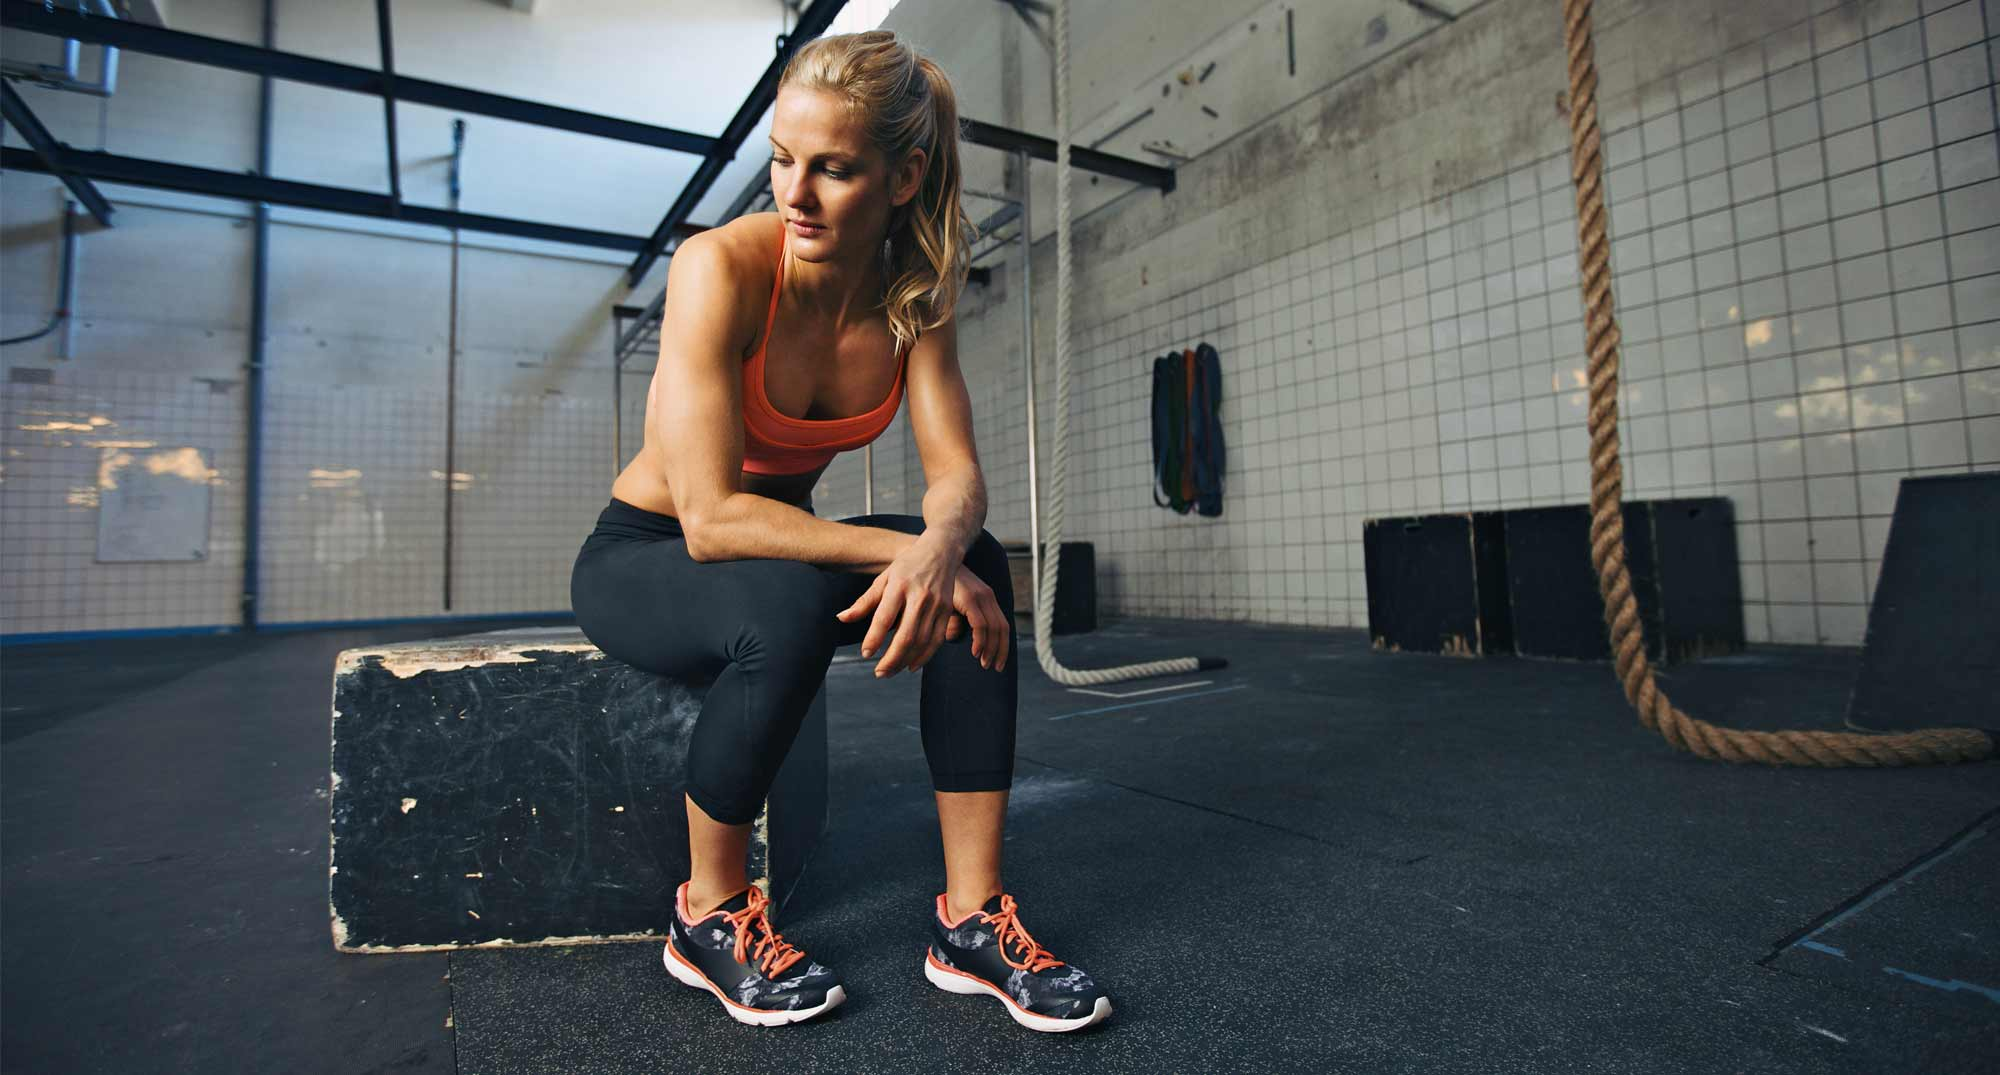 FITNESS: Overcome The Exercise Plateau